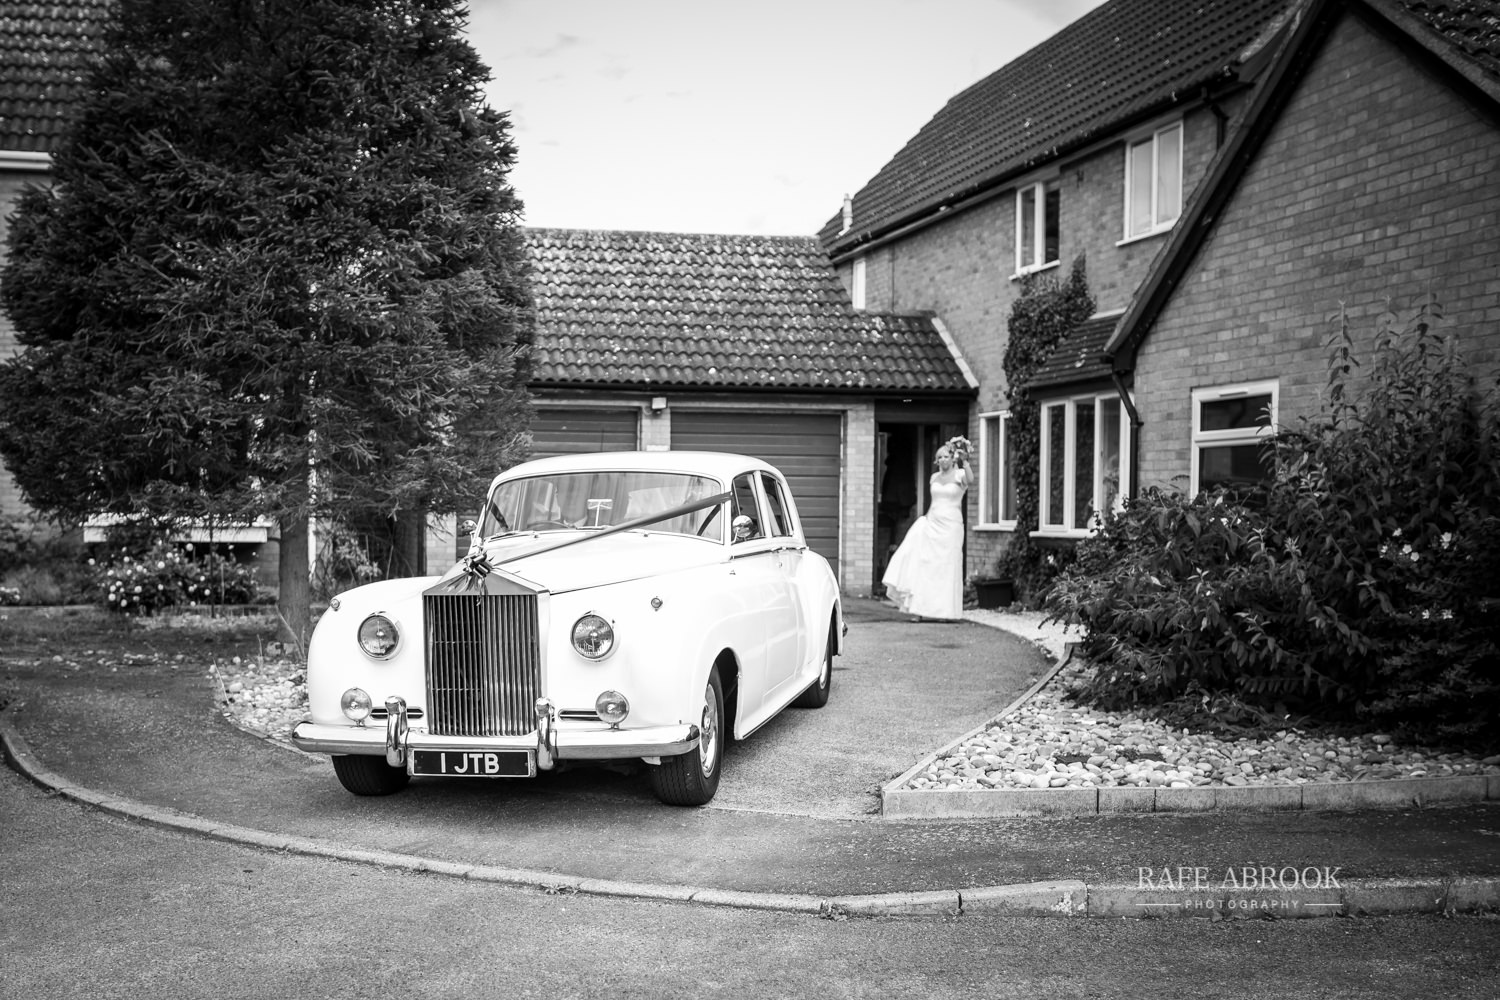 minstrel court wedding royston cambridge hertfordshire wedding photographer-1094.jpg